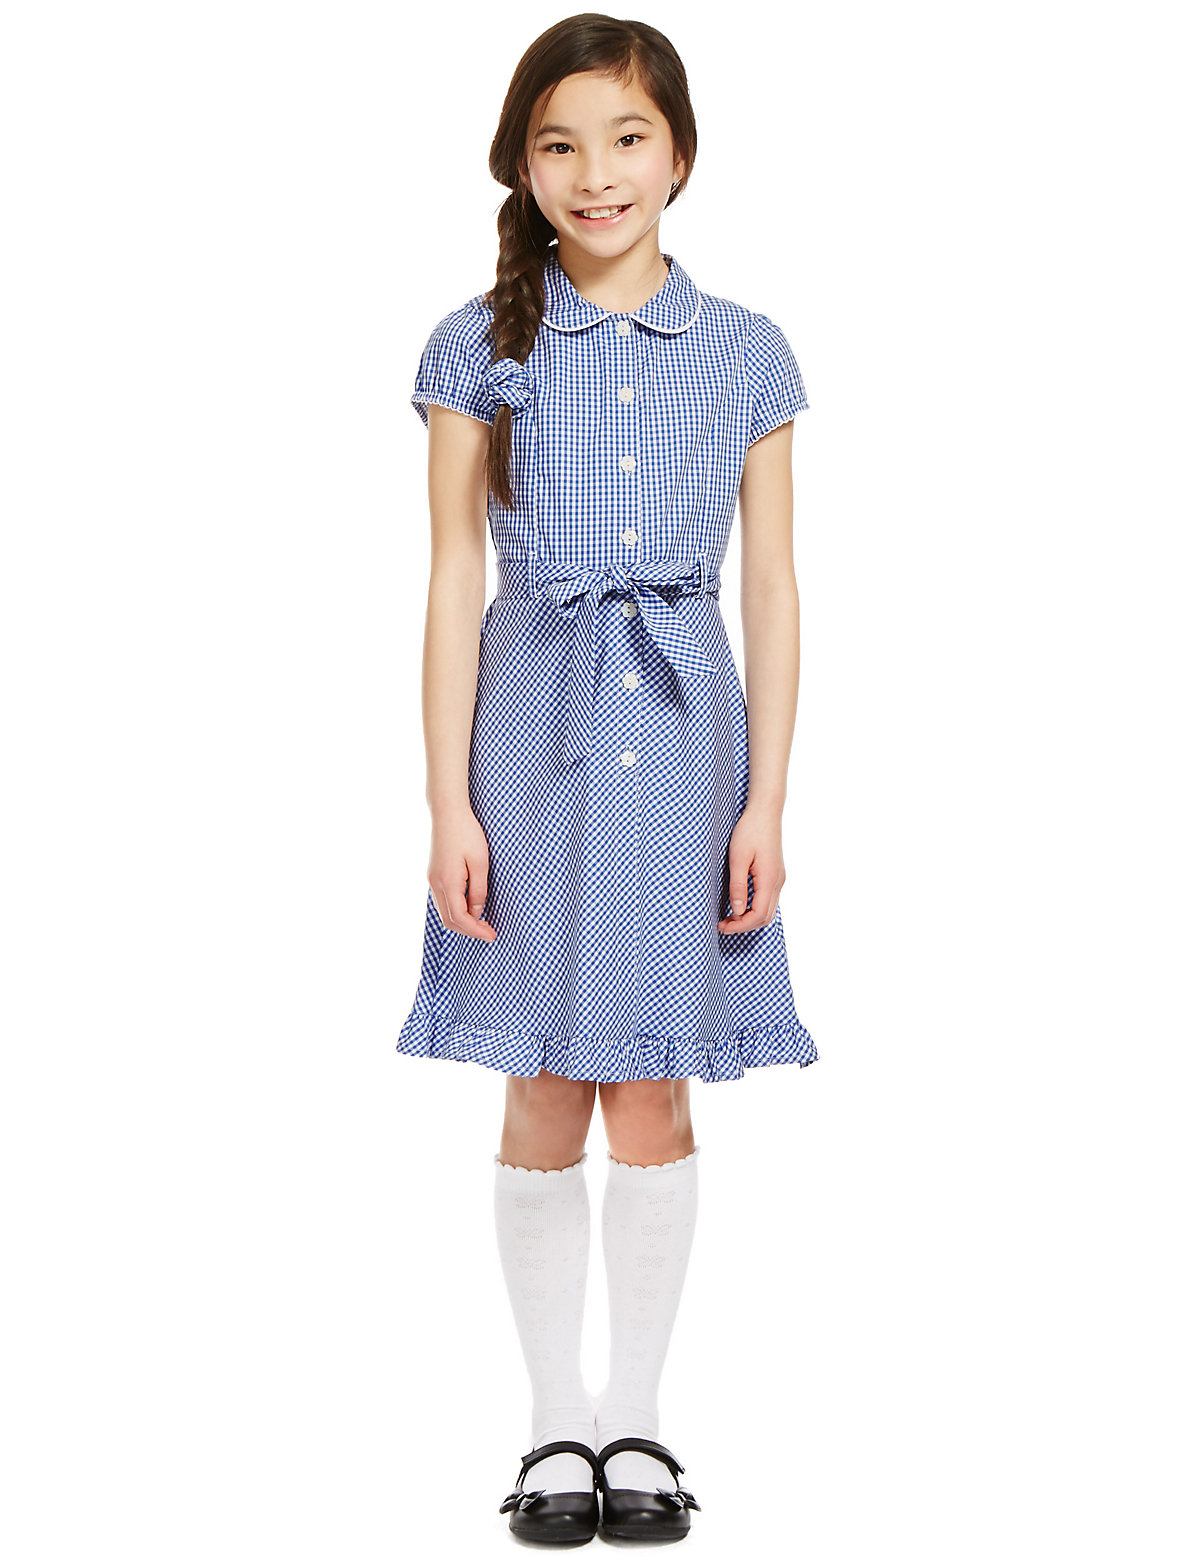 Girls' Pure Cotton Non-Iron Summer Gingham Checked Dress with Hairband